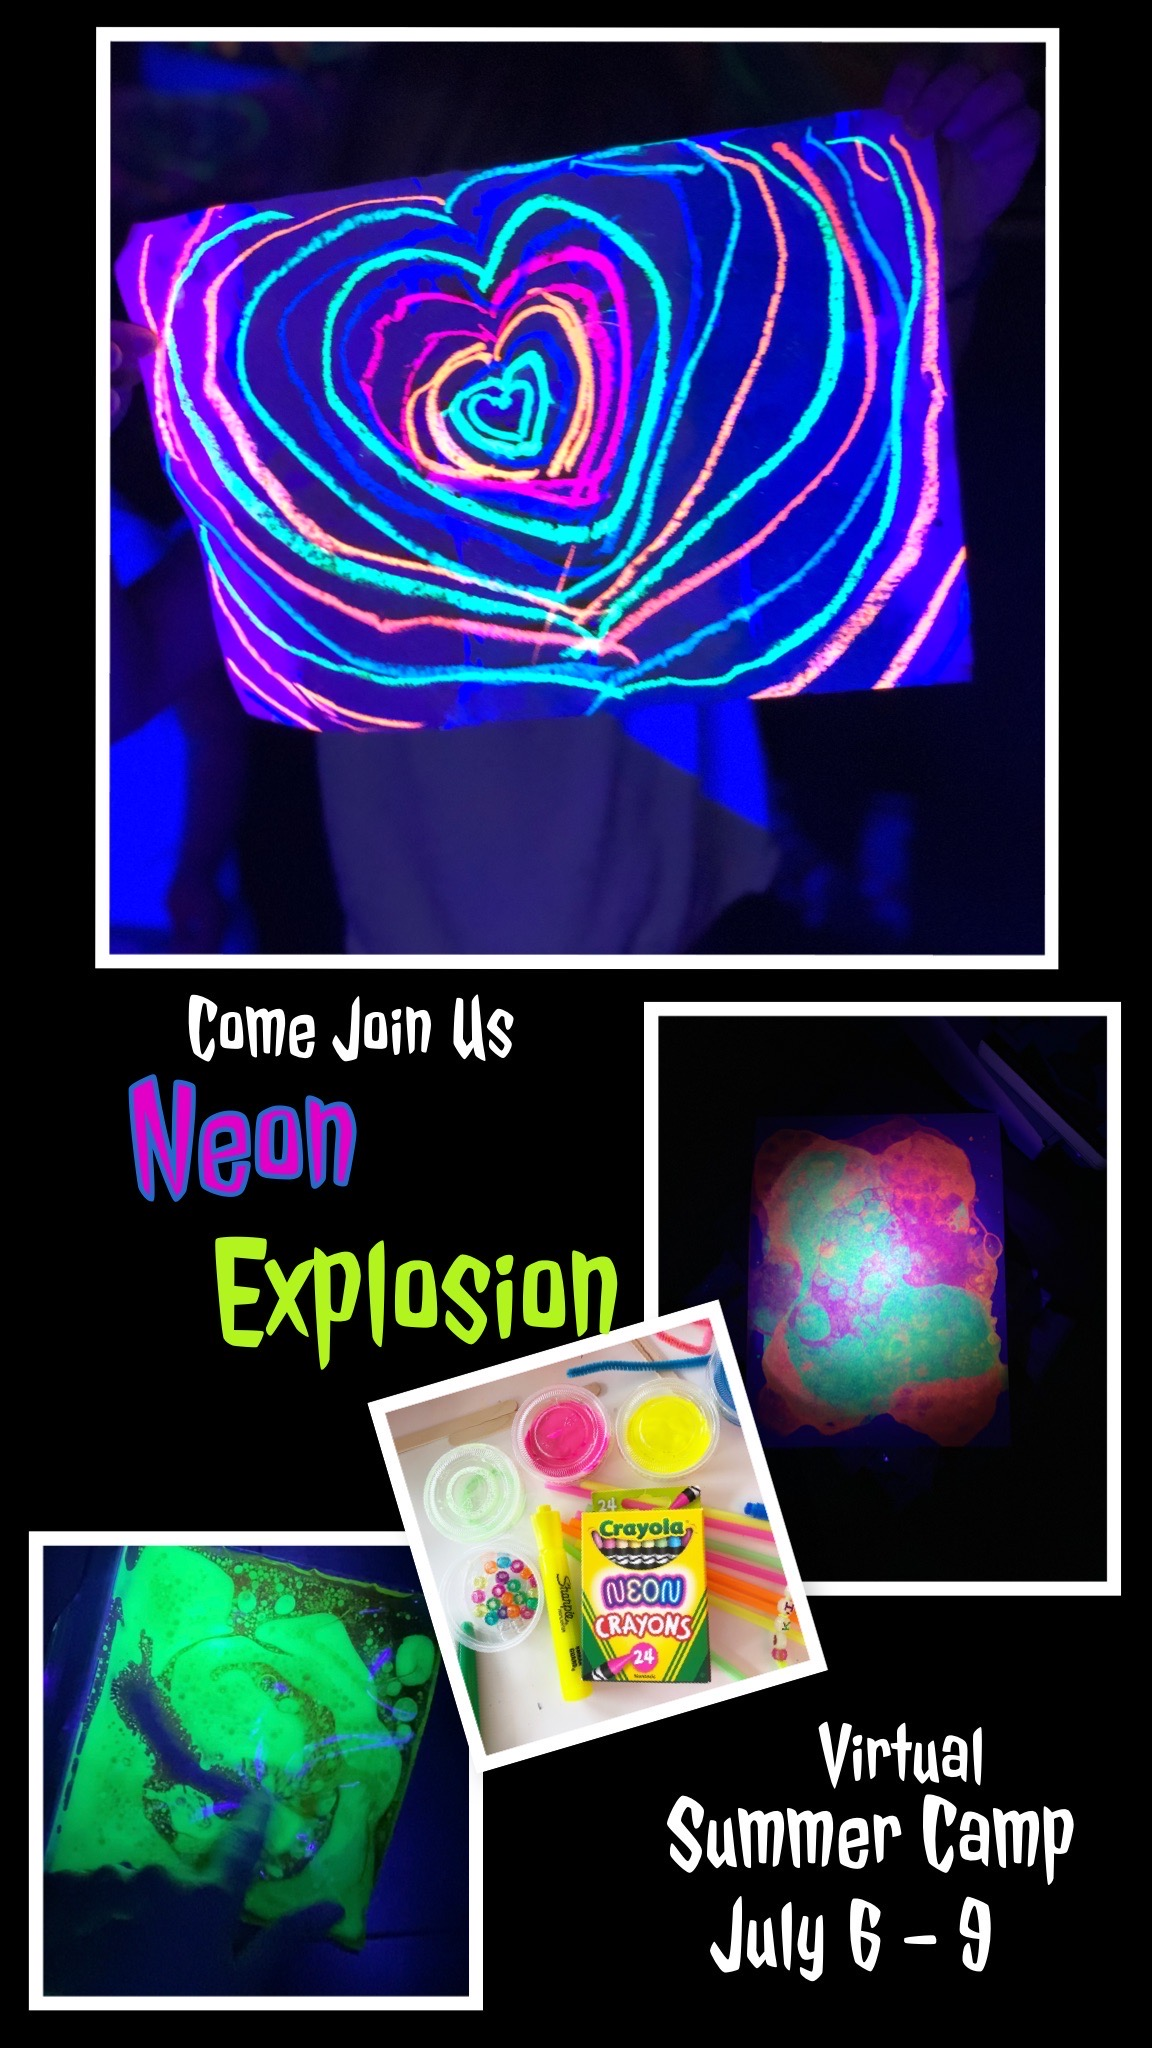 Virtual Summer Camp: Plan for some fun as we dive into the world of Neon Style by creating your own abstract canvas art, bubble art with fluorescent paint, concentric designs, and so much more. {warning, you child may end up covered in highlighters but it does easily wash off}